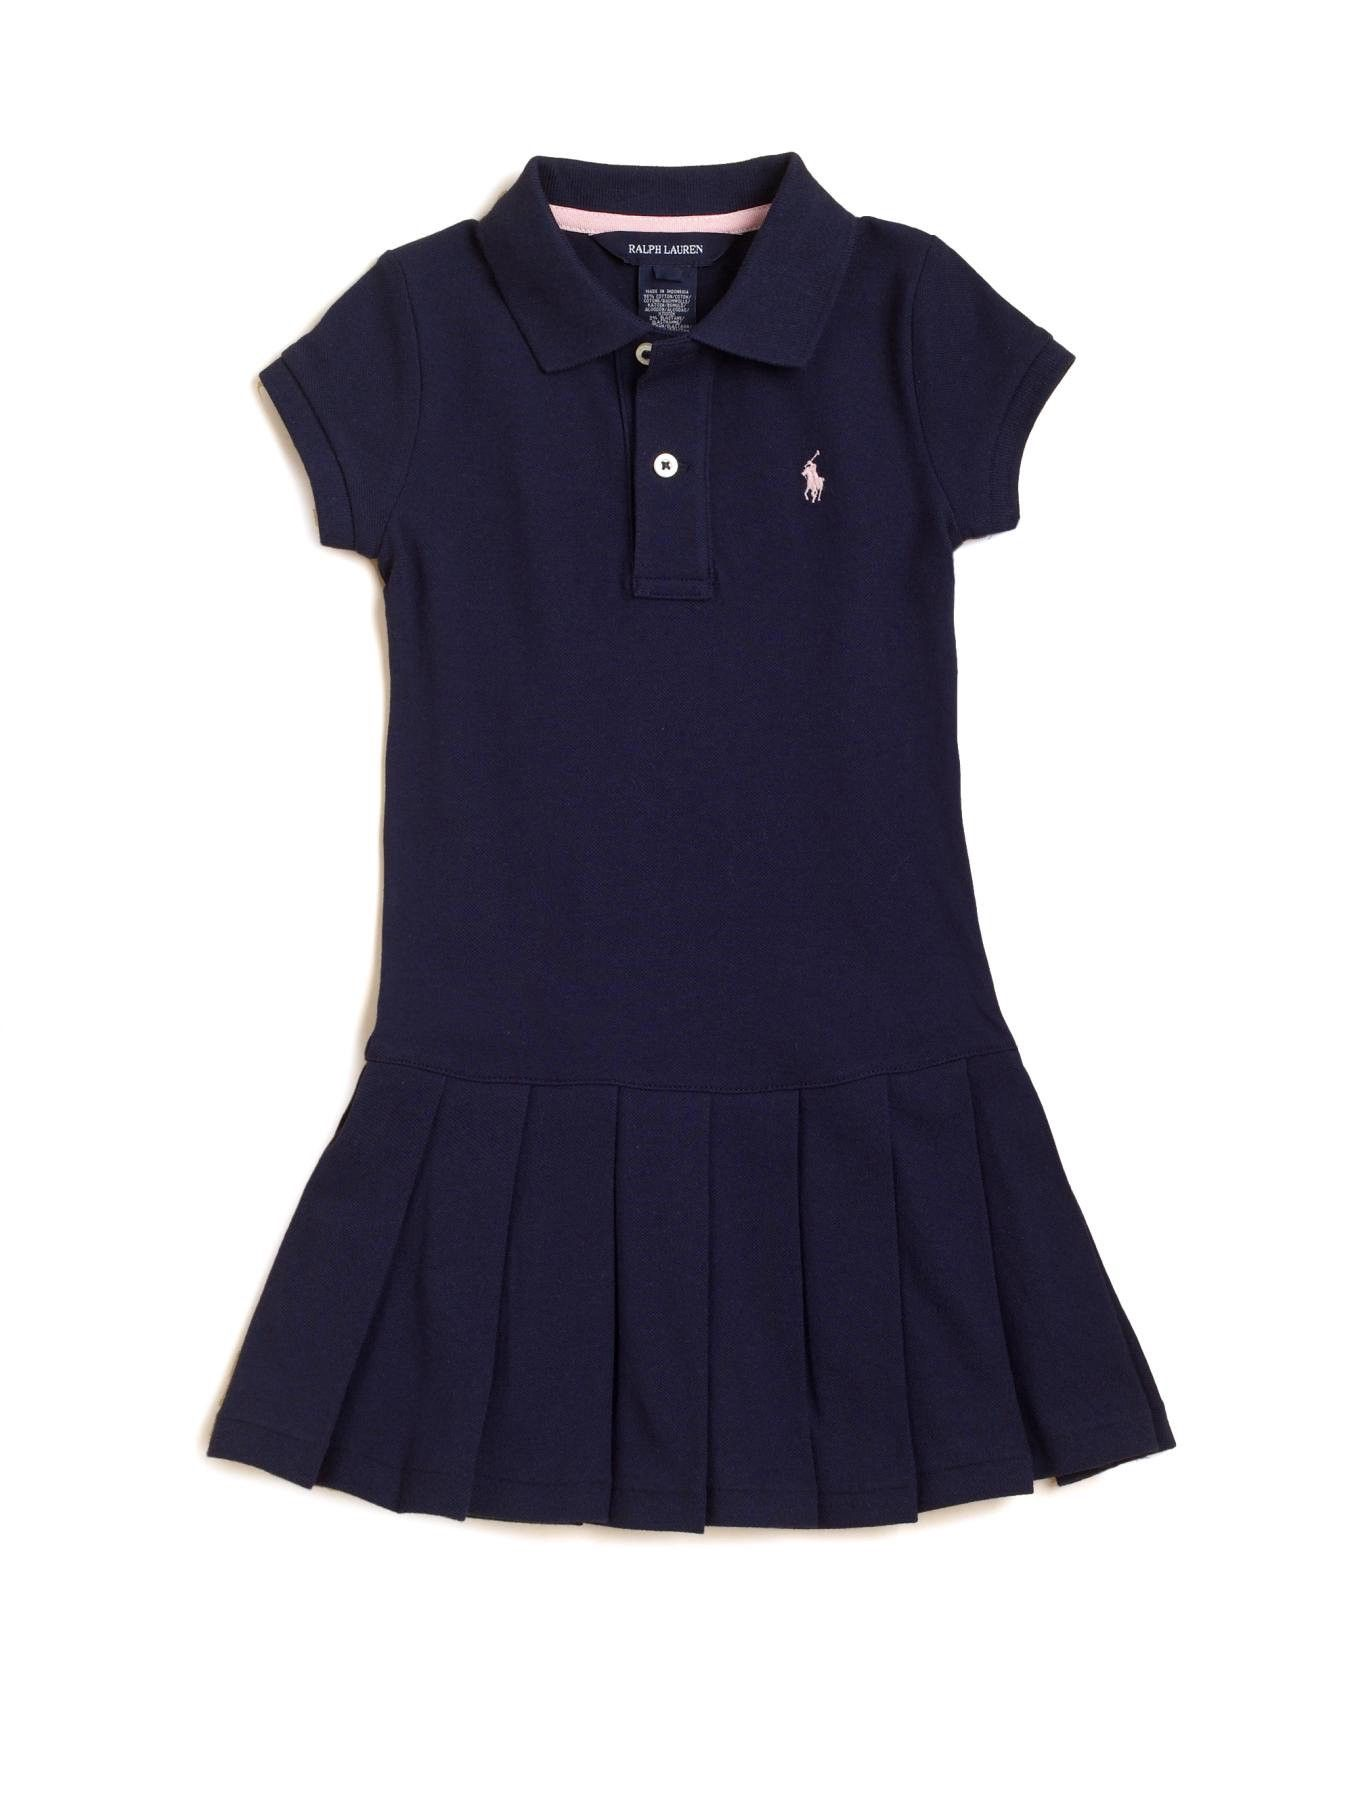 2fa103ca Toddler's & Little Girl's Polo Dress by Ralph Lauren in 2019 ...